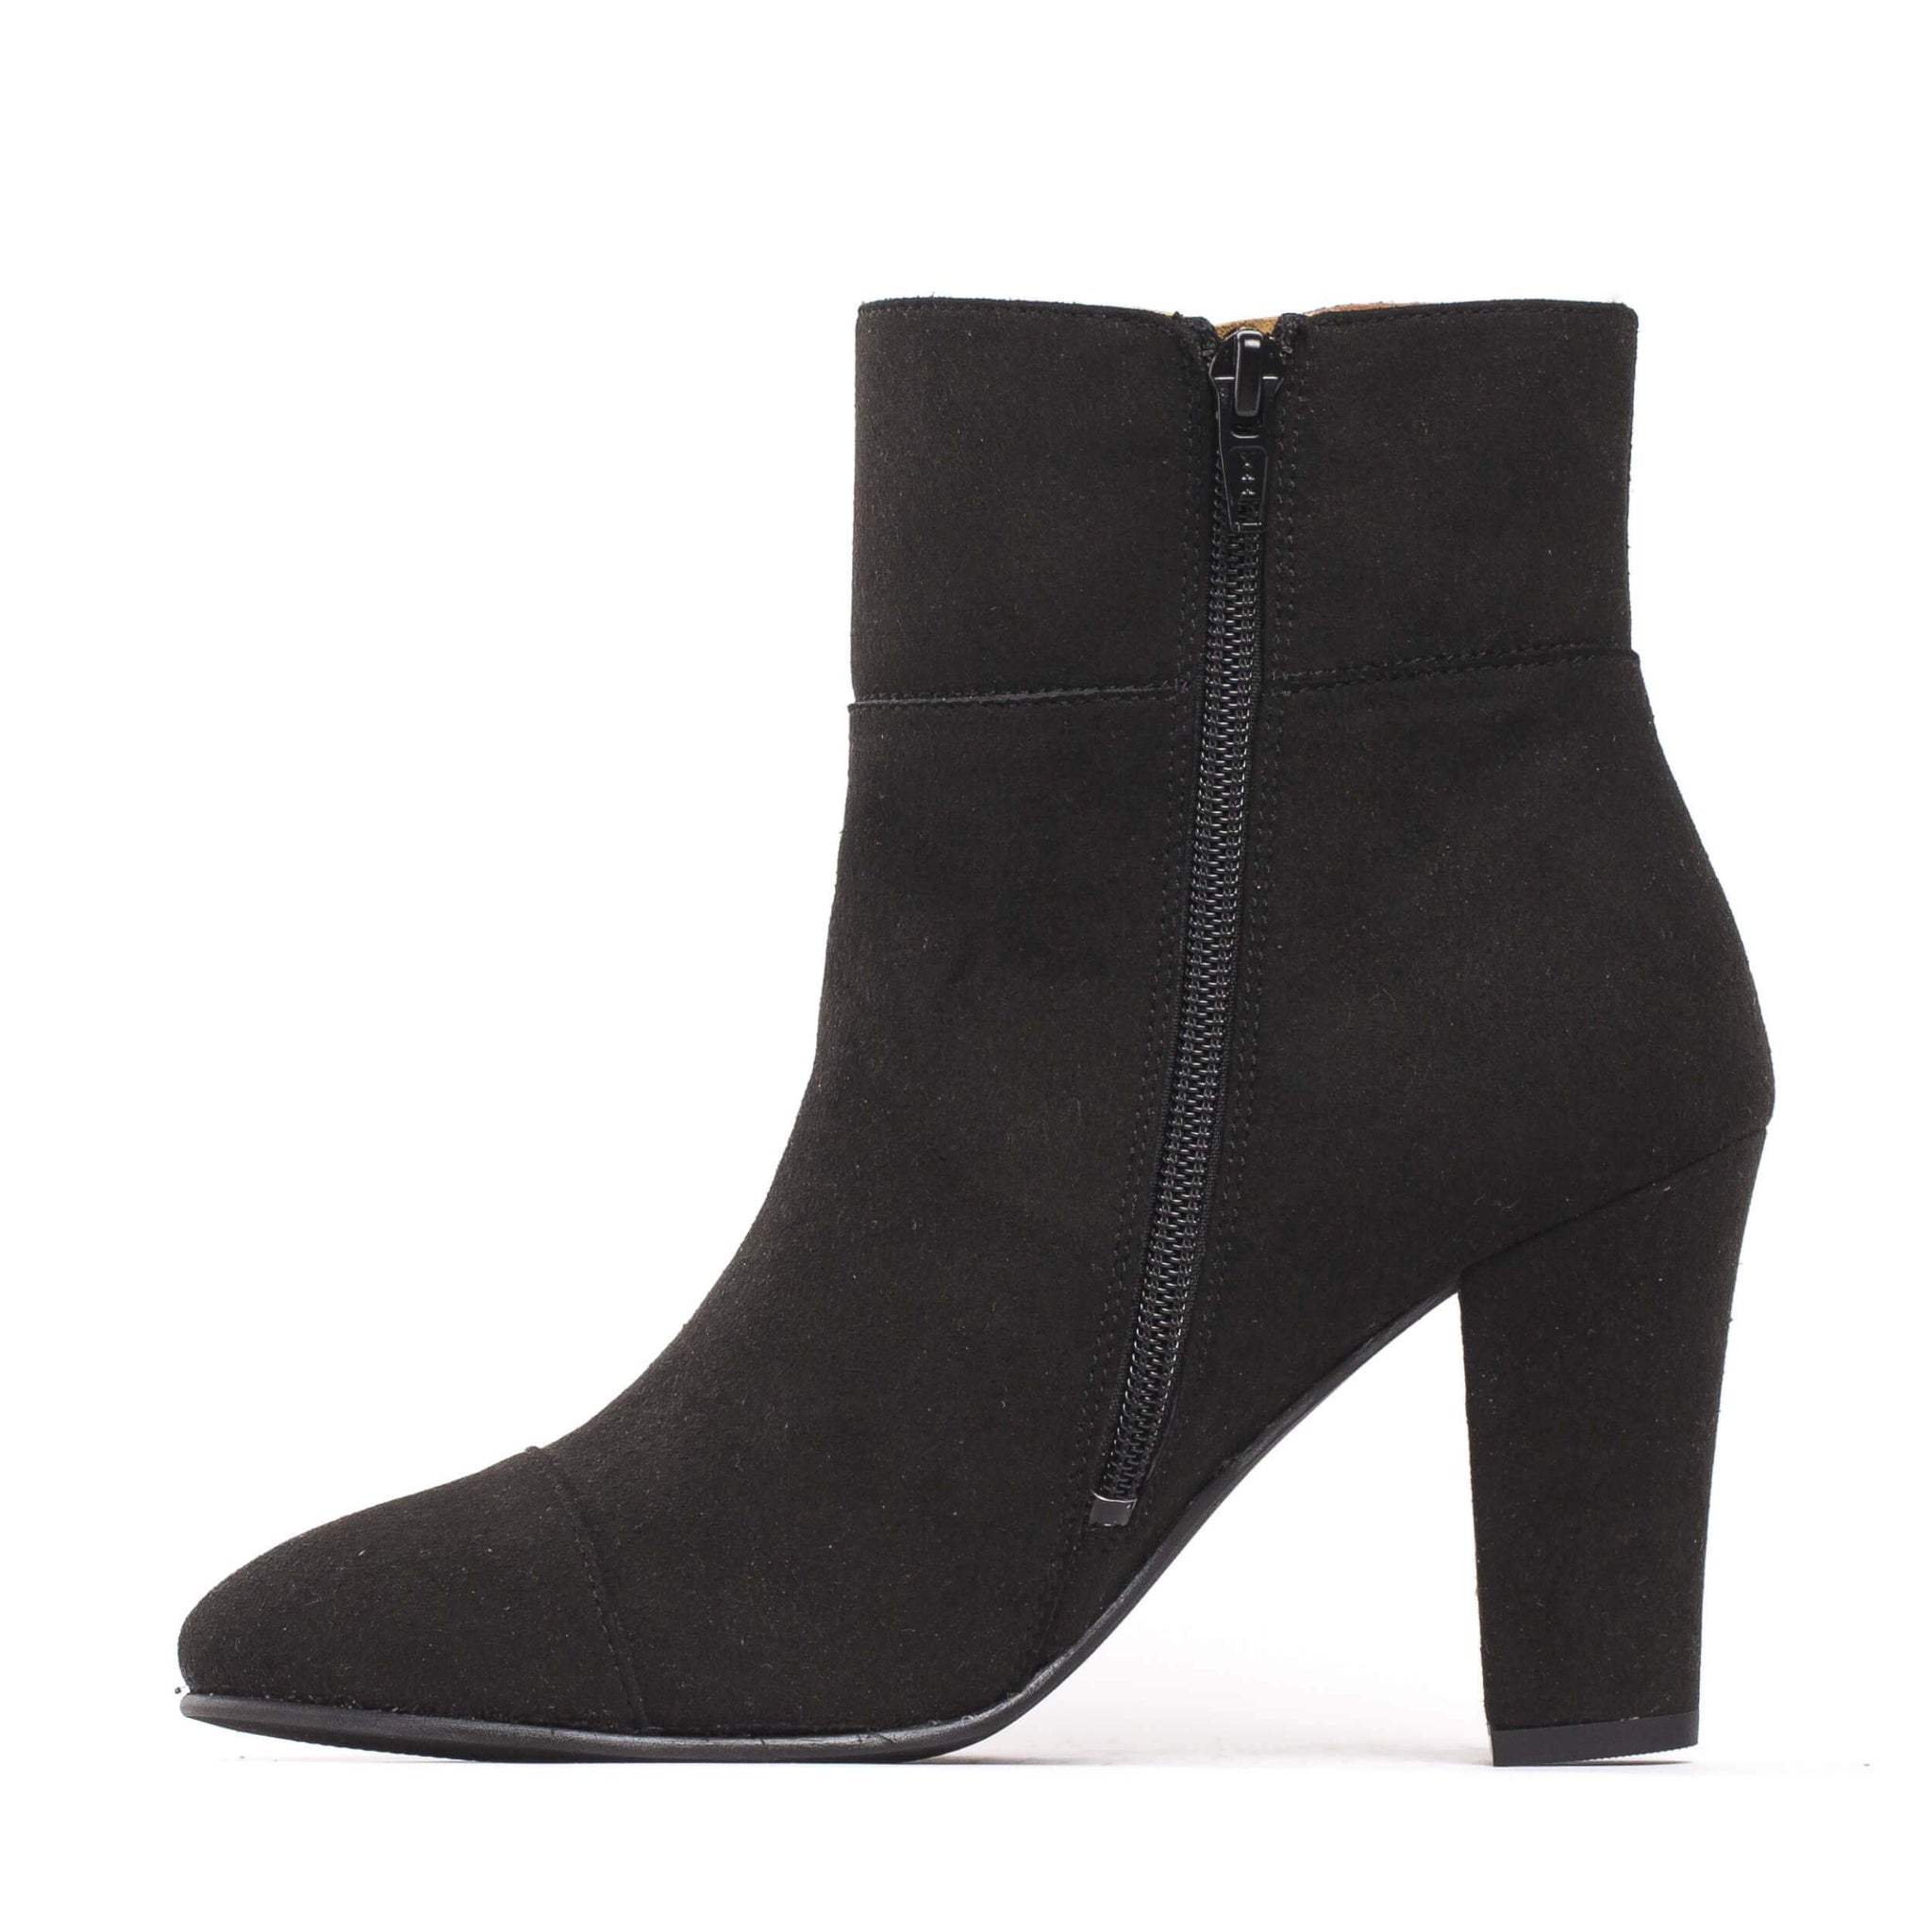 Nae shoes Bline Boots in Ecological Microfiber. sustainable fashion ethical fashion